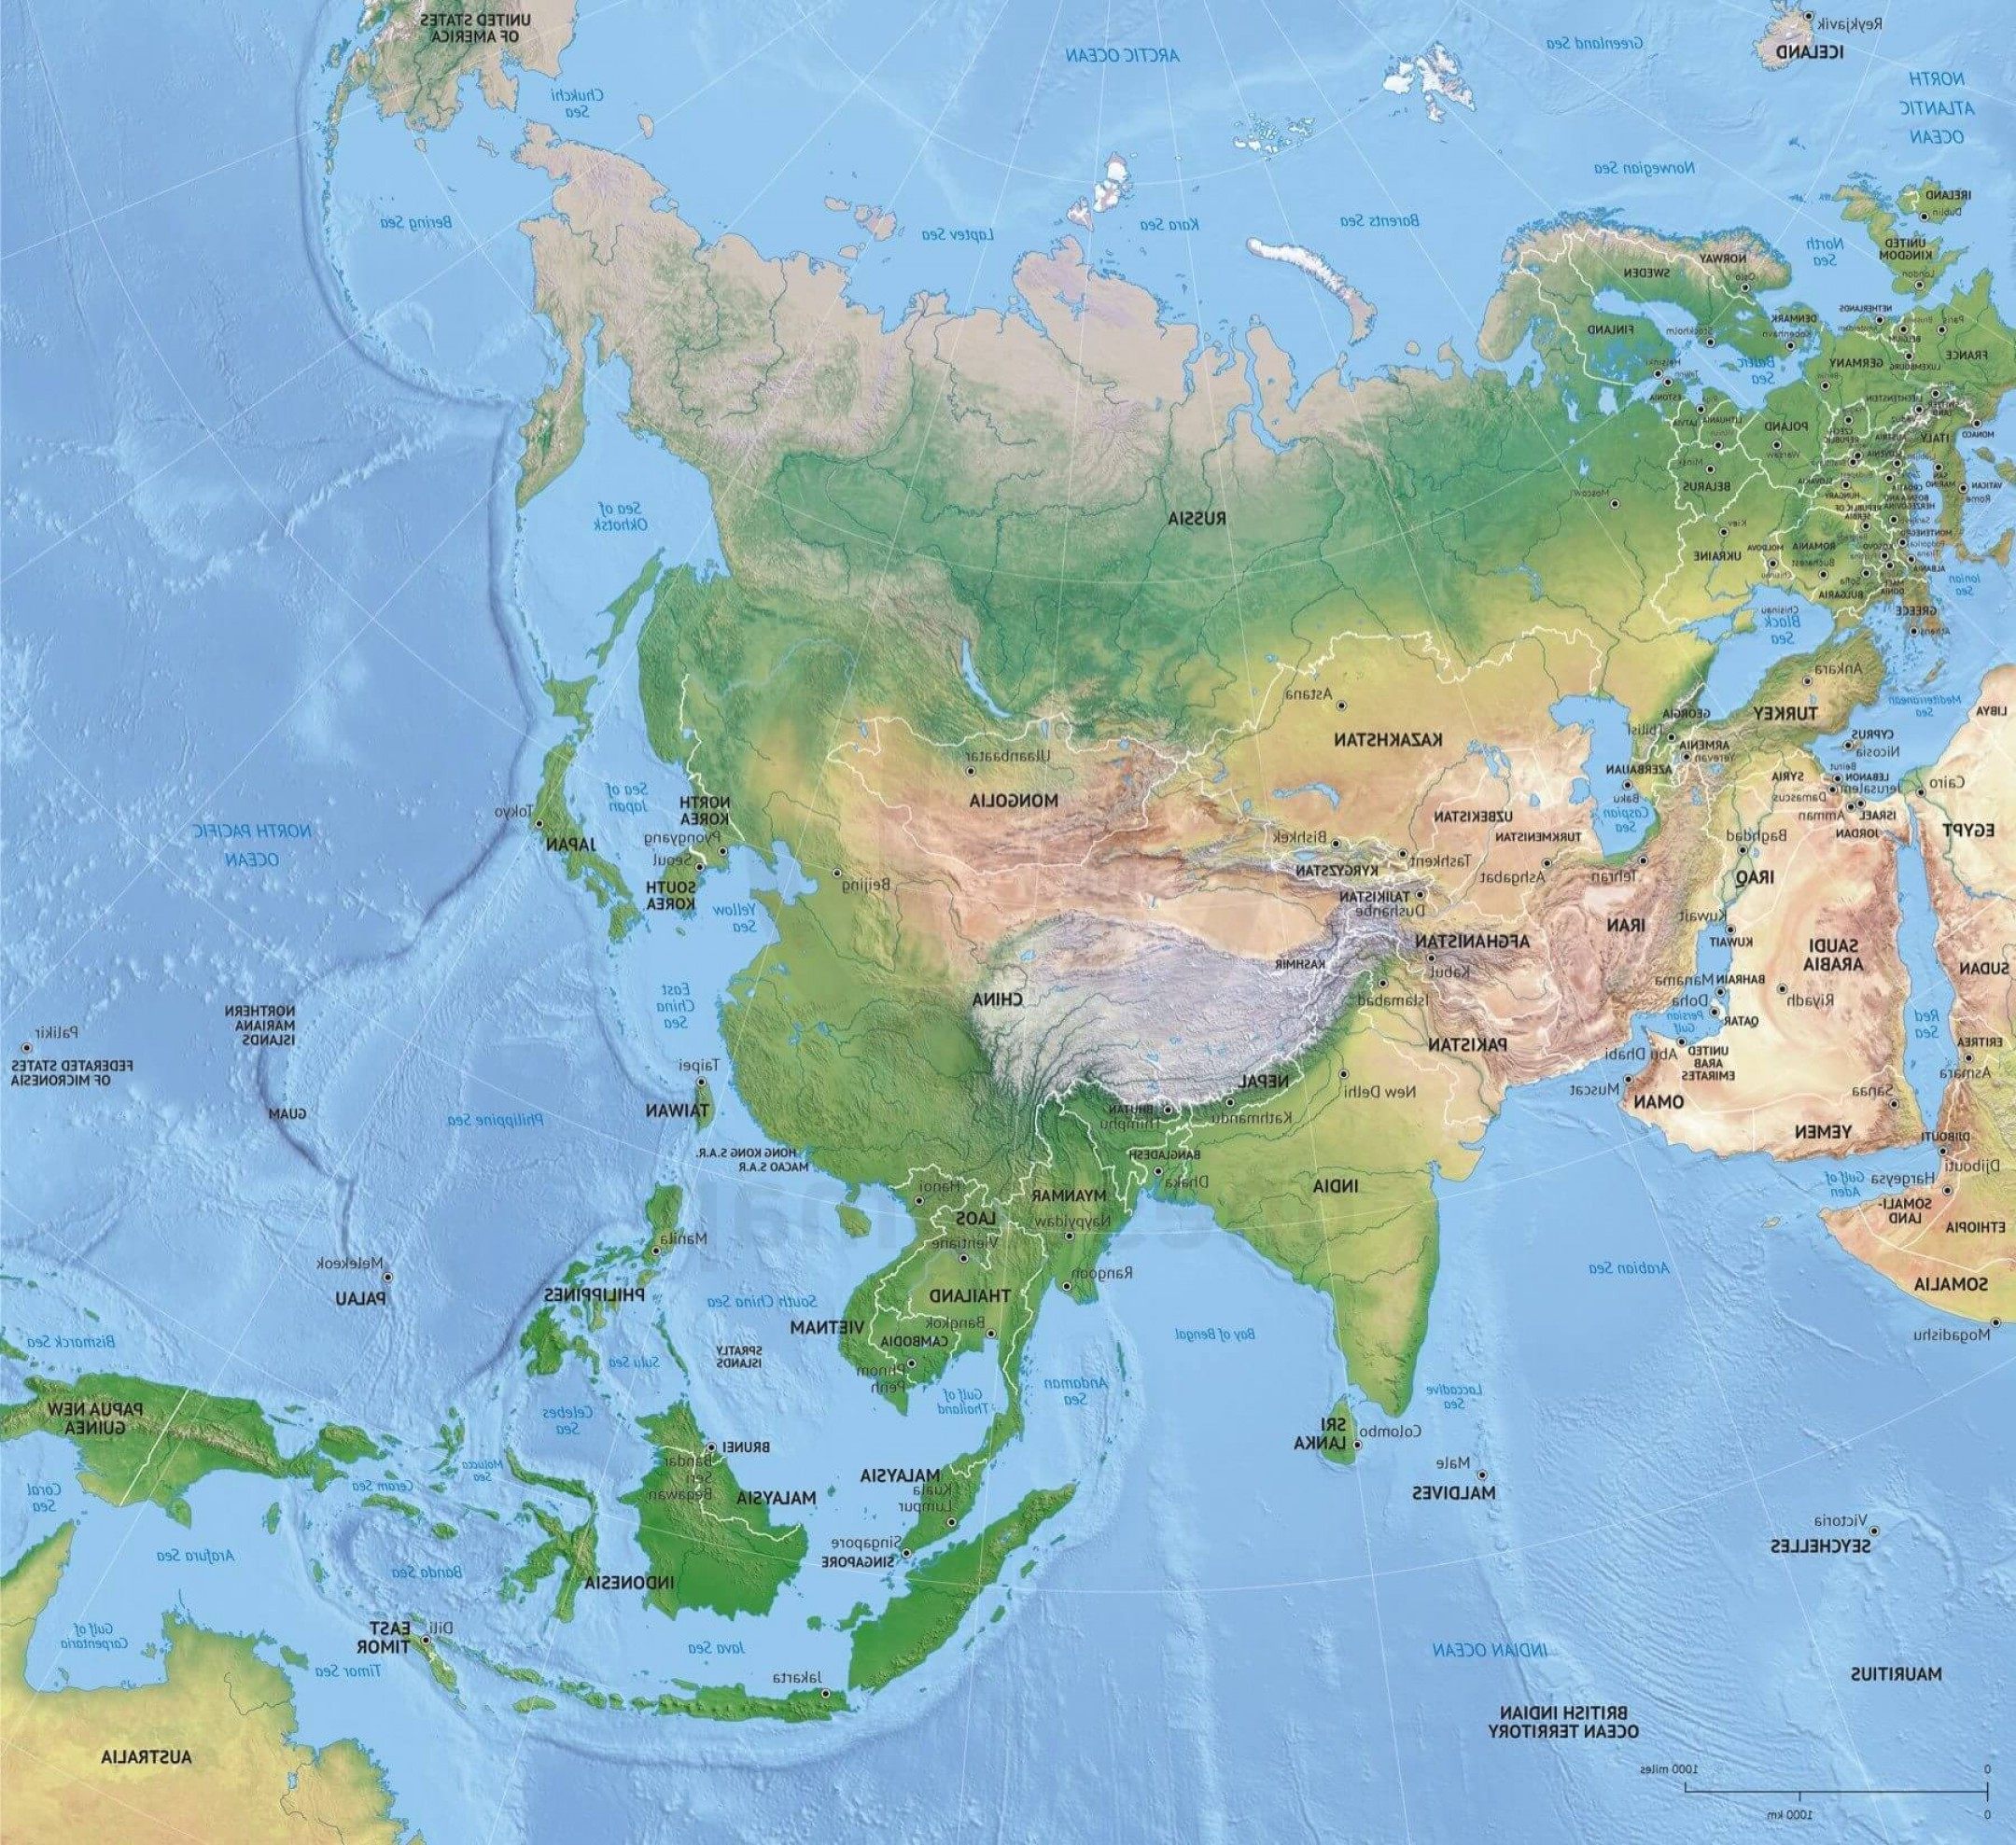 Asia Continent Map Vector: Printable Vector Map Asia Continent Political Shaded Relief